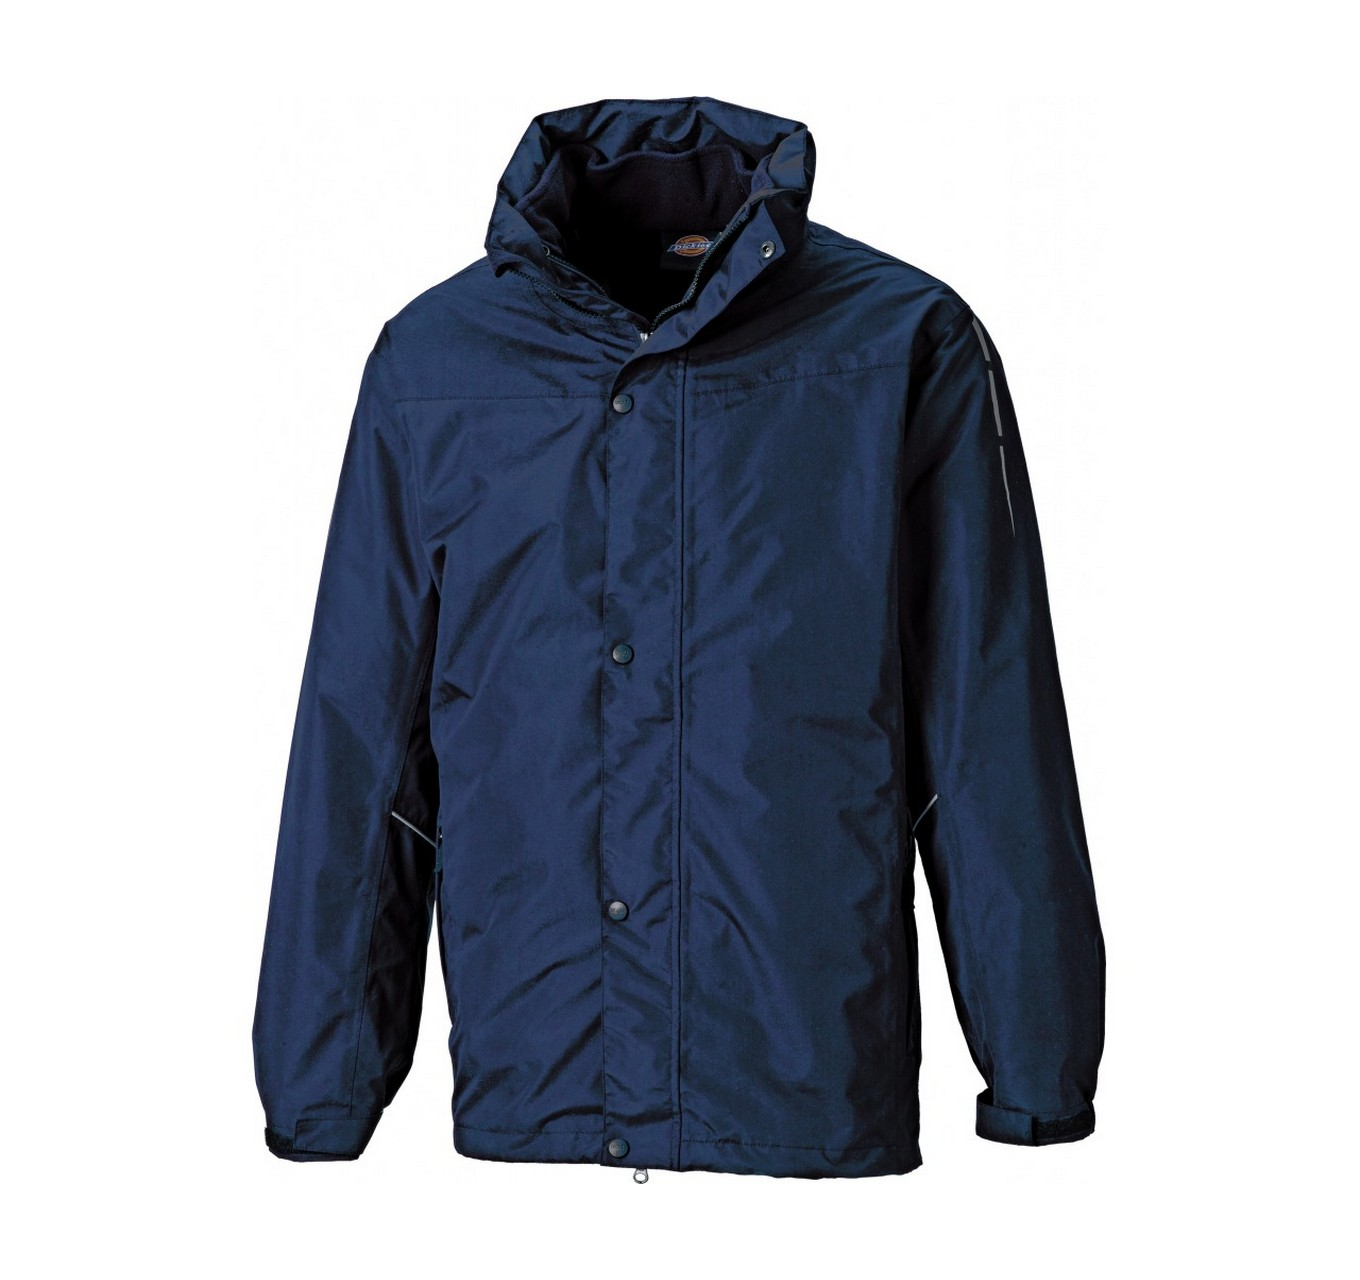 Abbot 3 in 1 Jacket Navy XXL